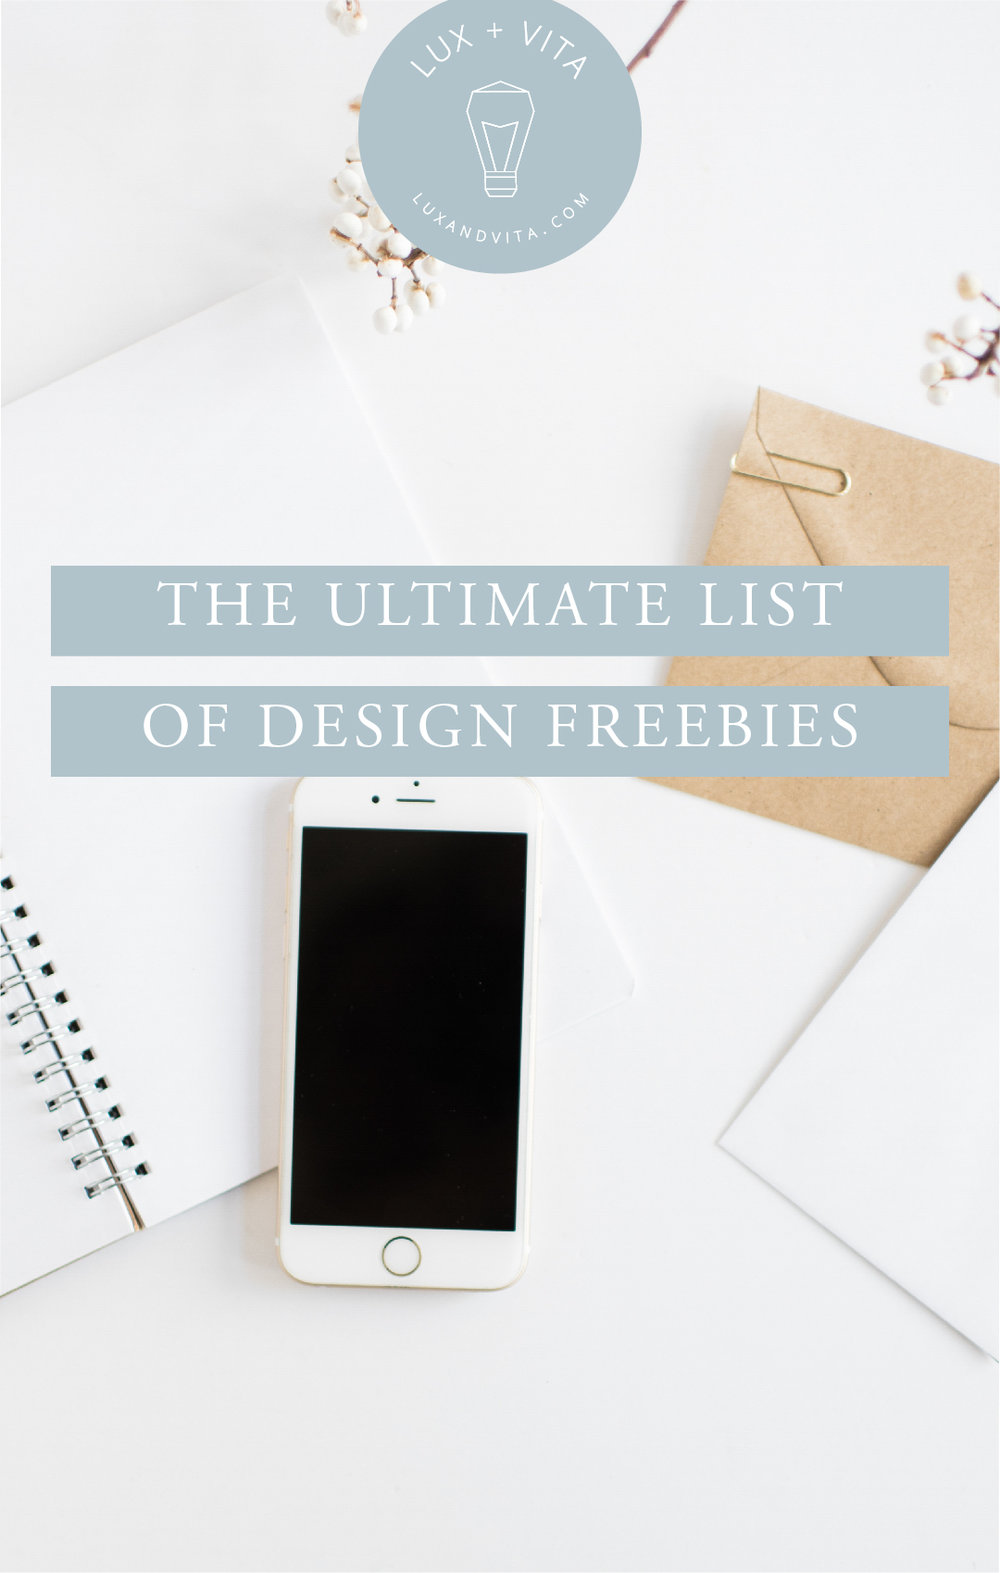 Ultimate List of Design Freebies #graphicdesign #freephotos #freevectors #freevideo #freeaudio #freefonts